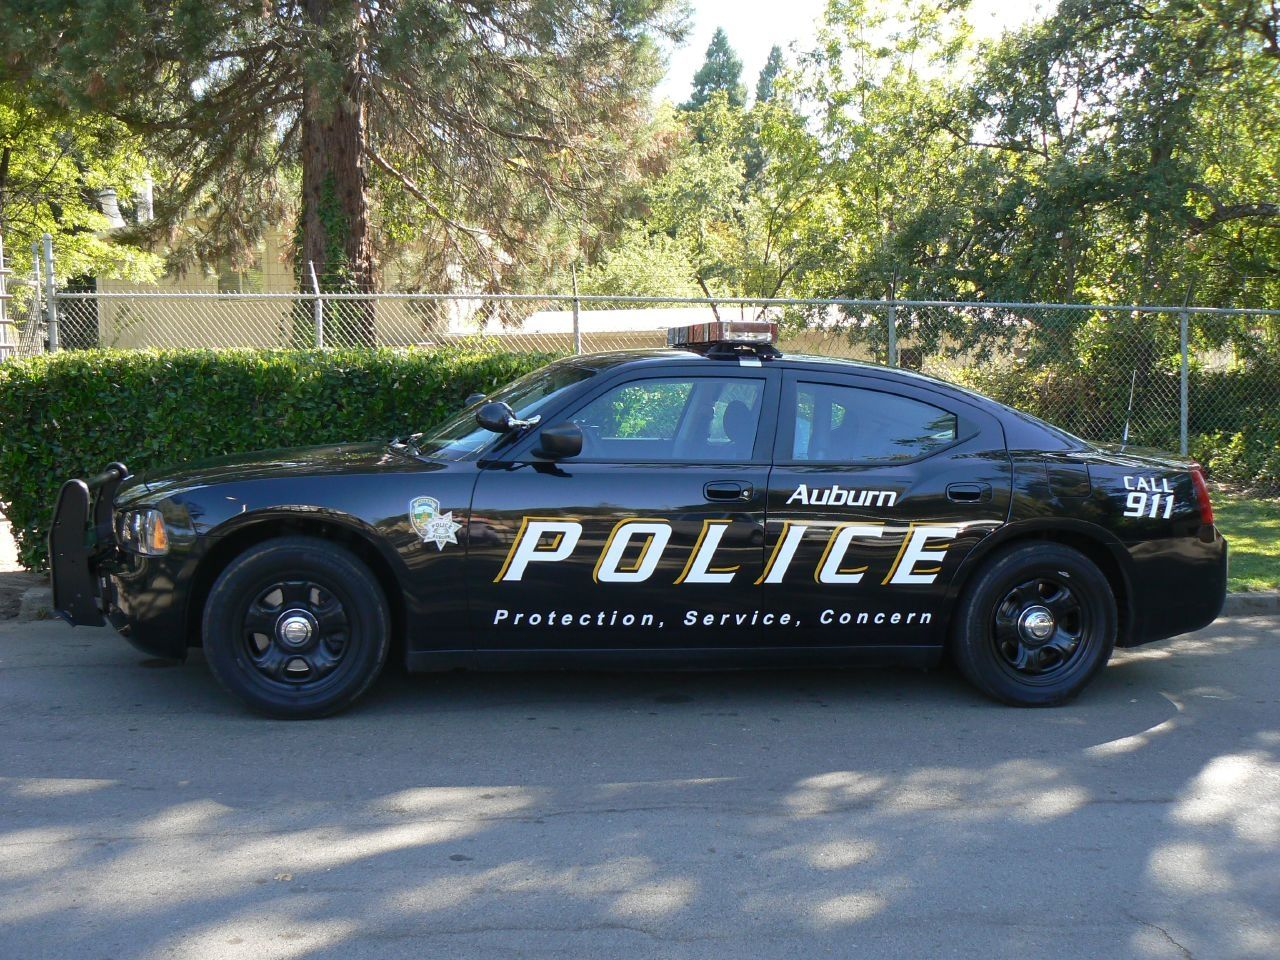 Dodge Charger Police Car Police Cars Dodge Charger Police